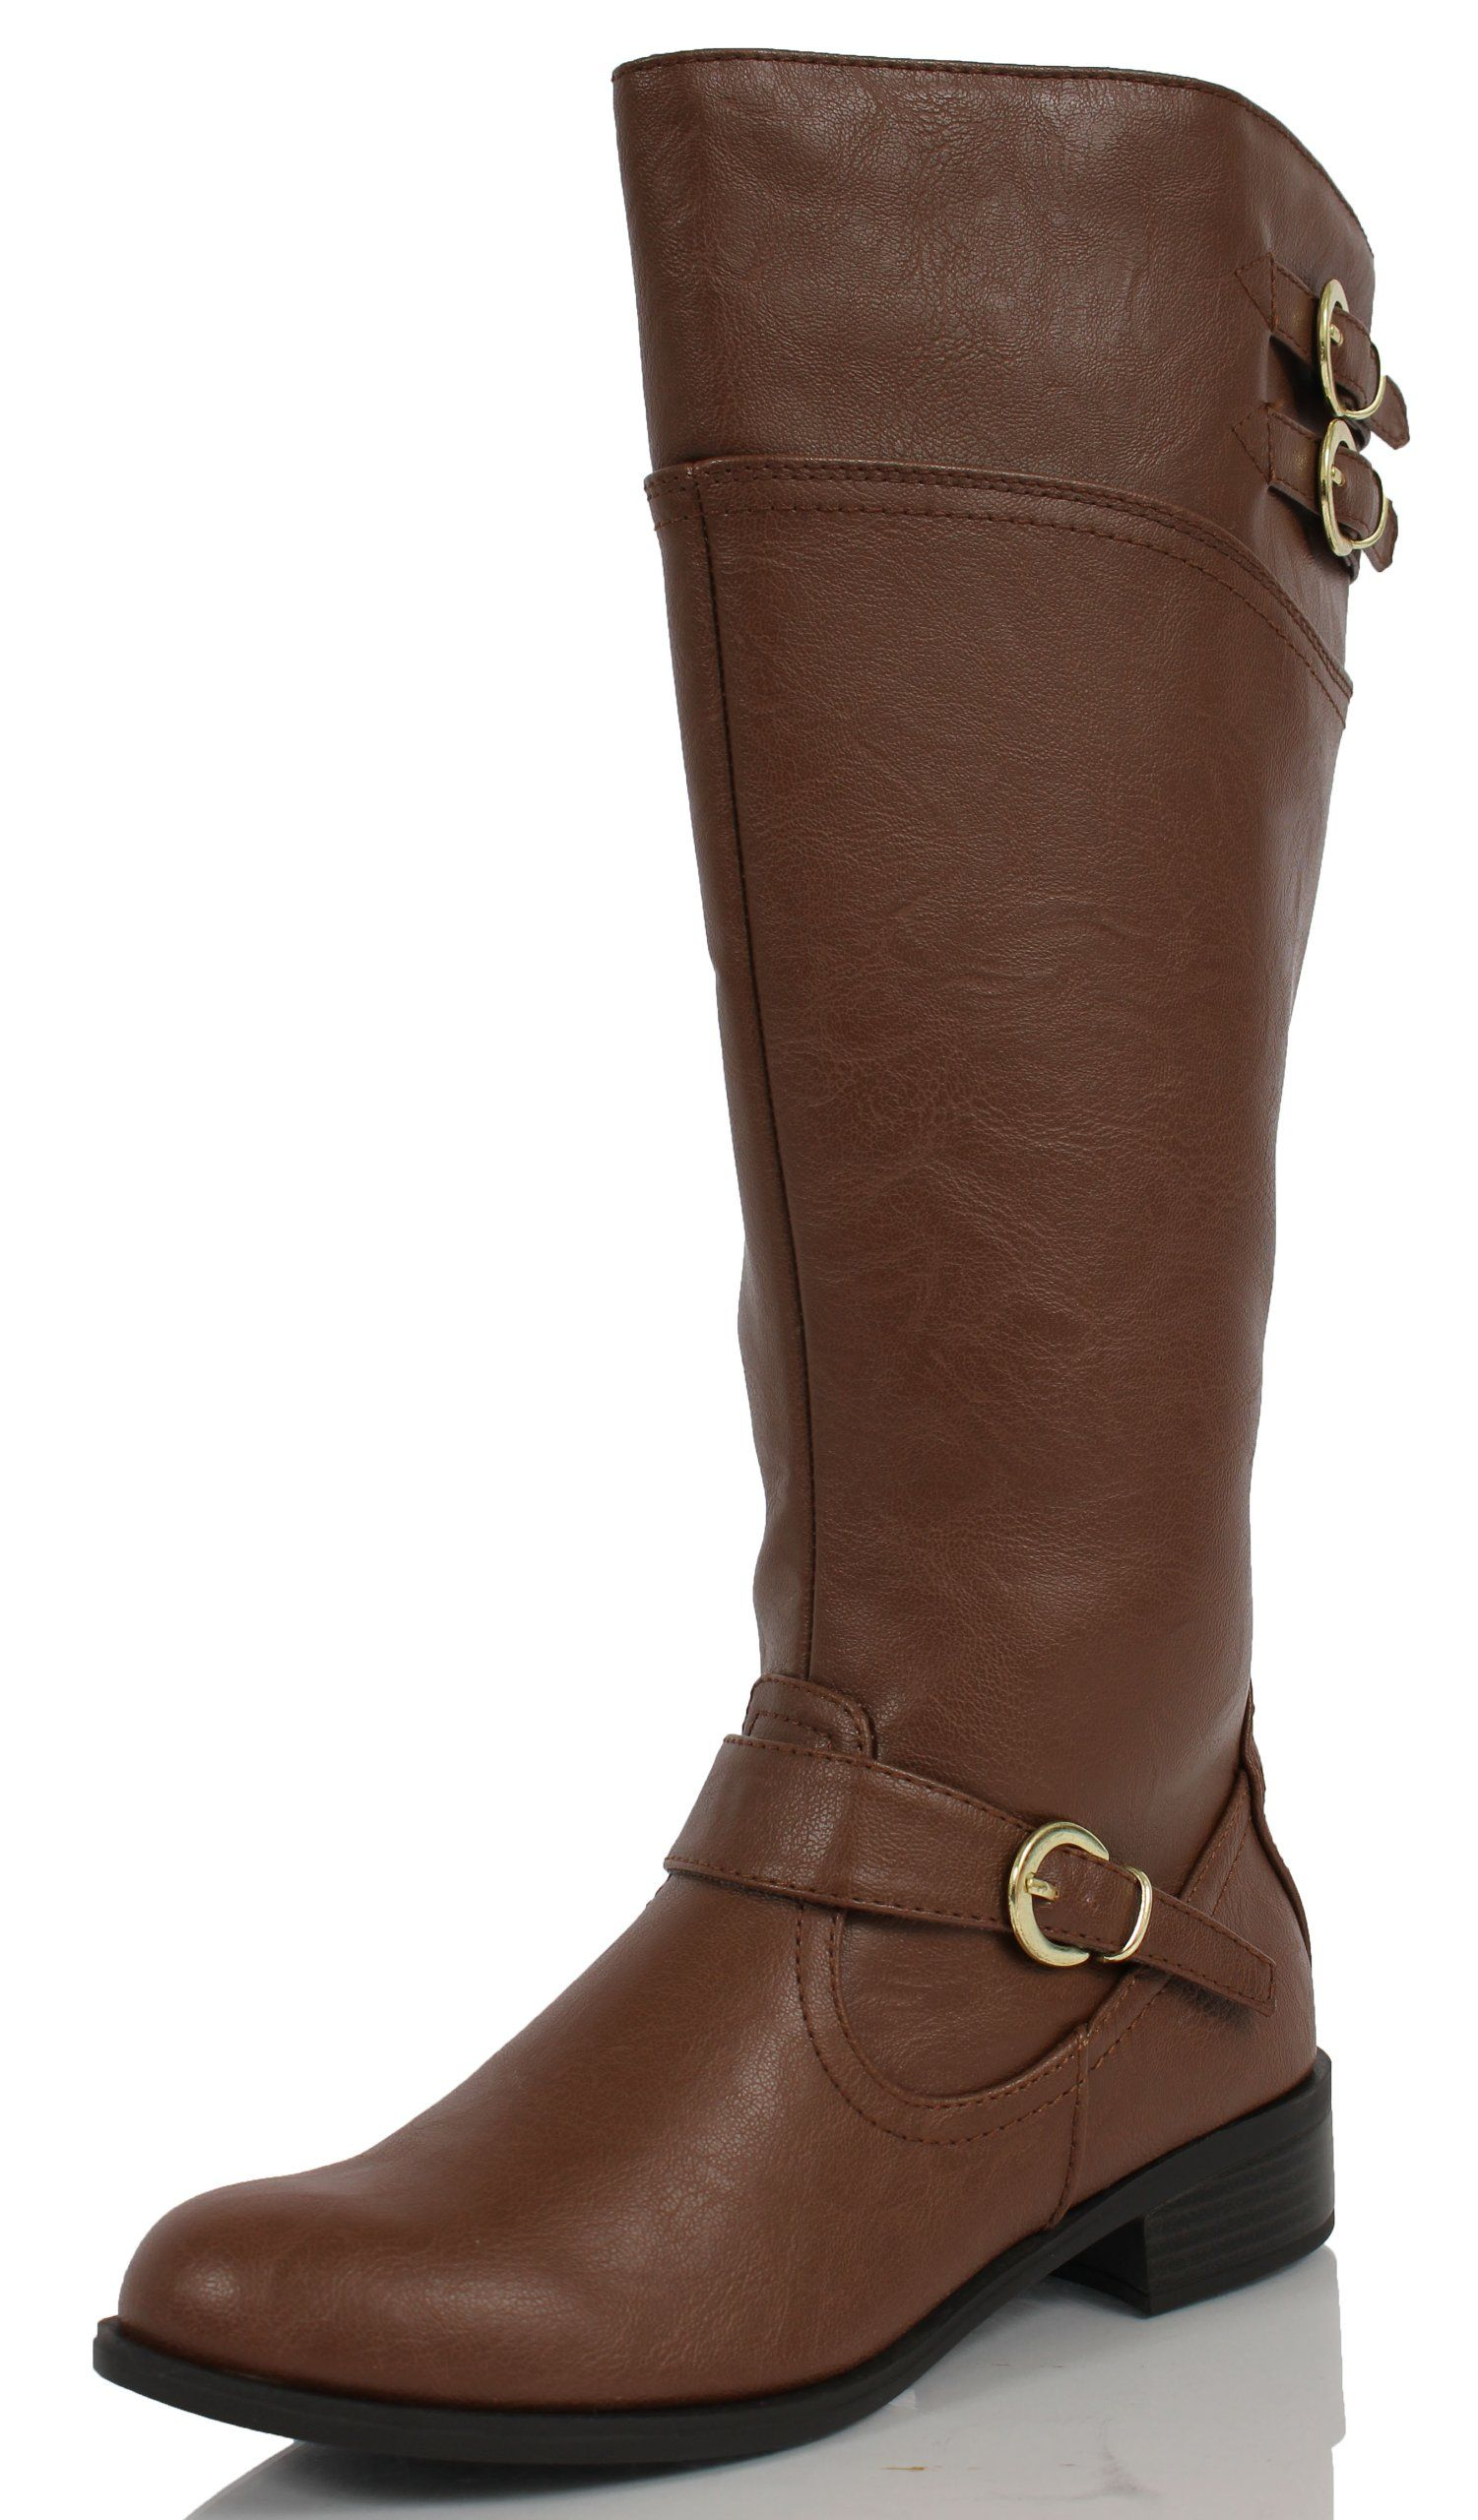 661e1dff965 Soda Wome's Golf Faux Leather Knee High Riding Boot Tan, 7 M US ...